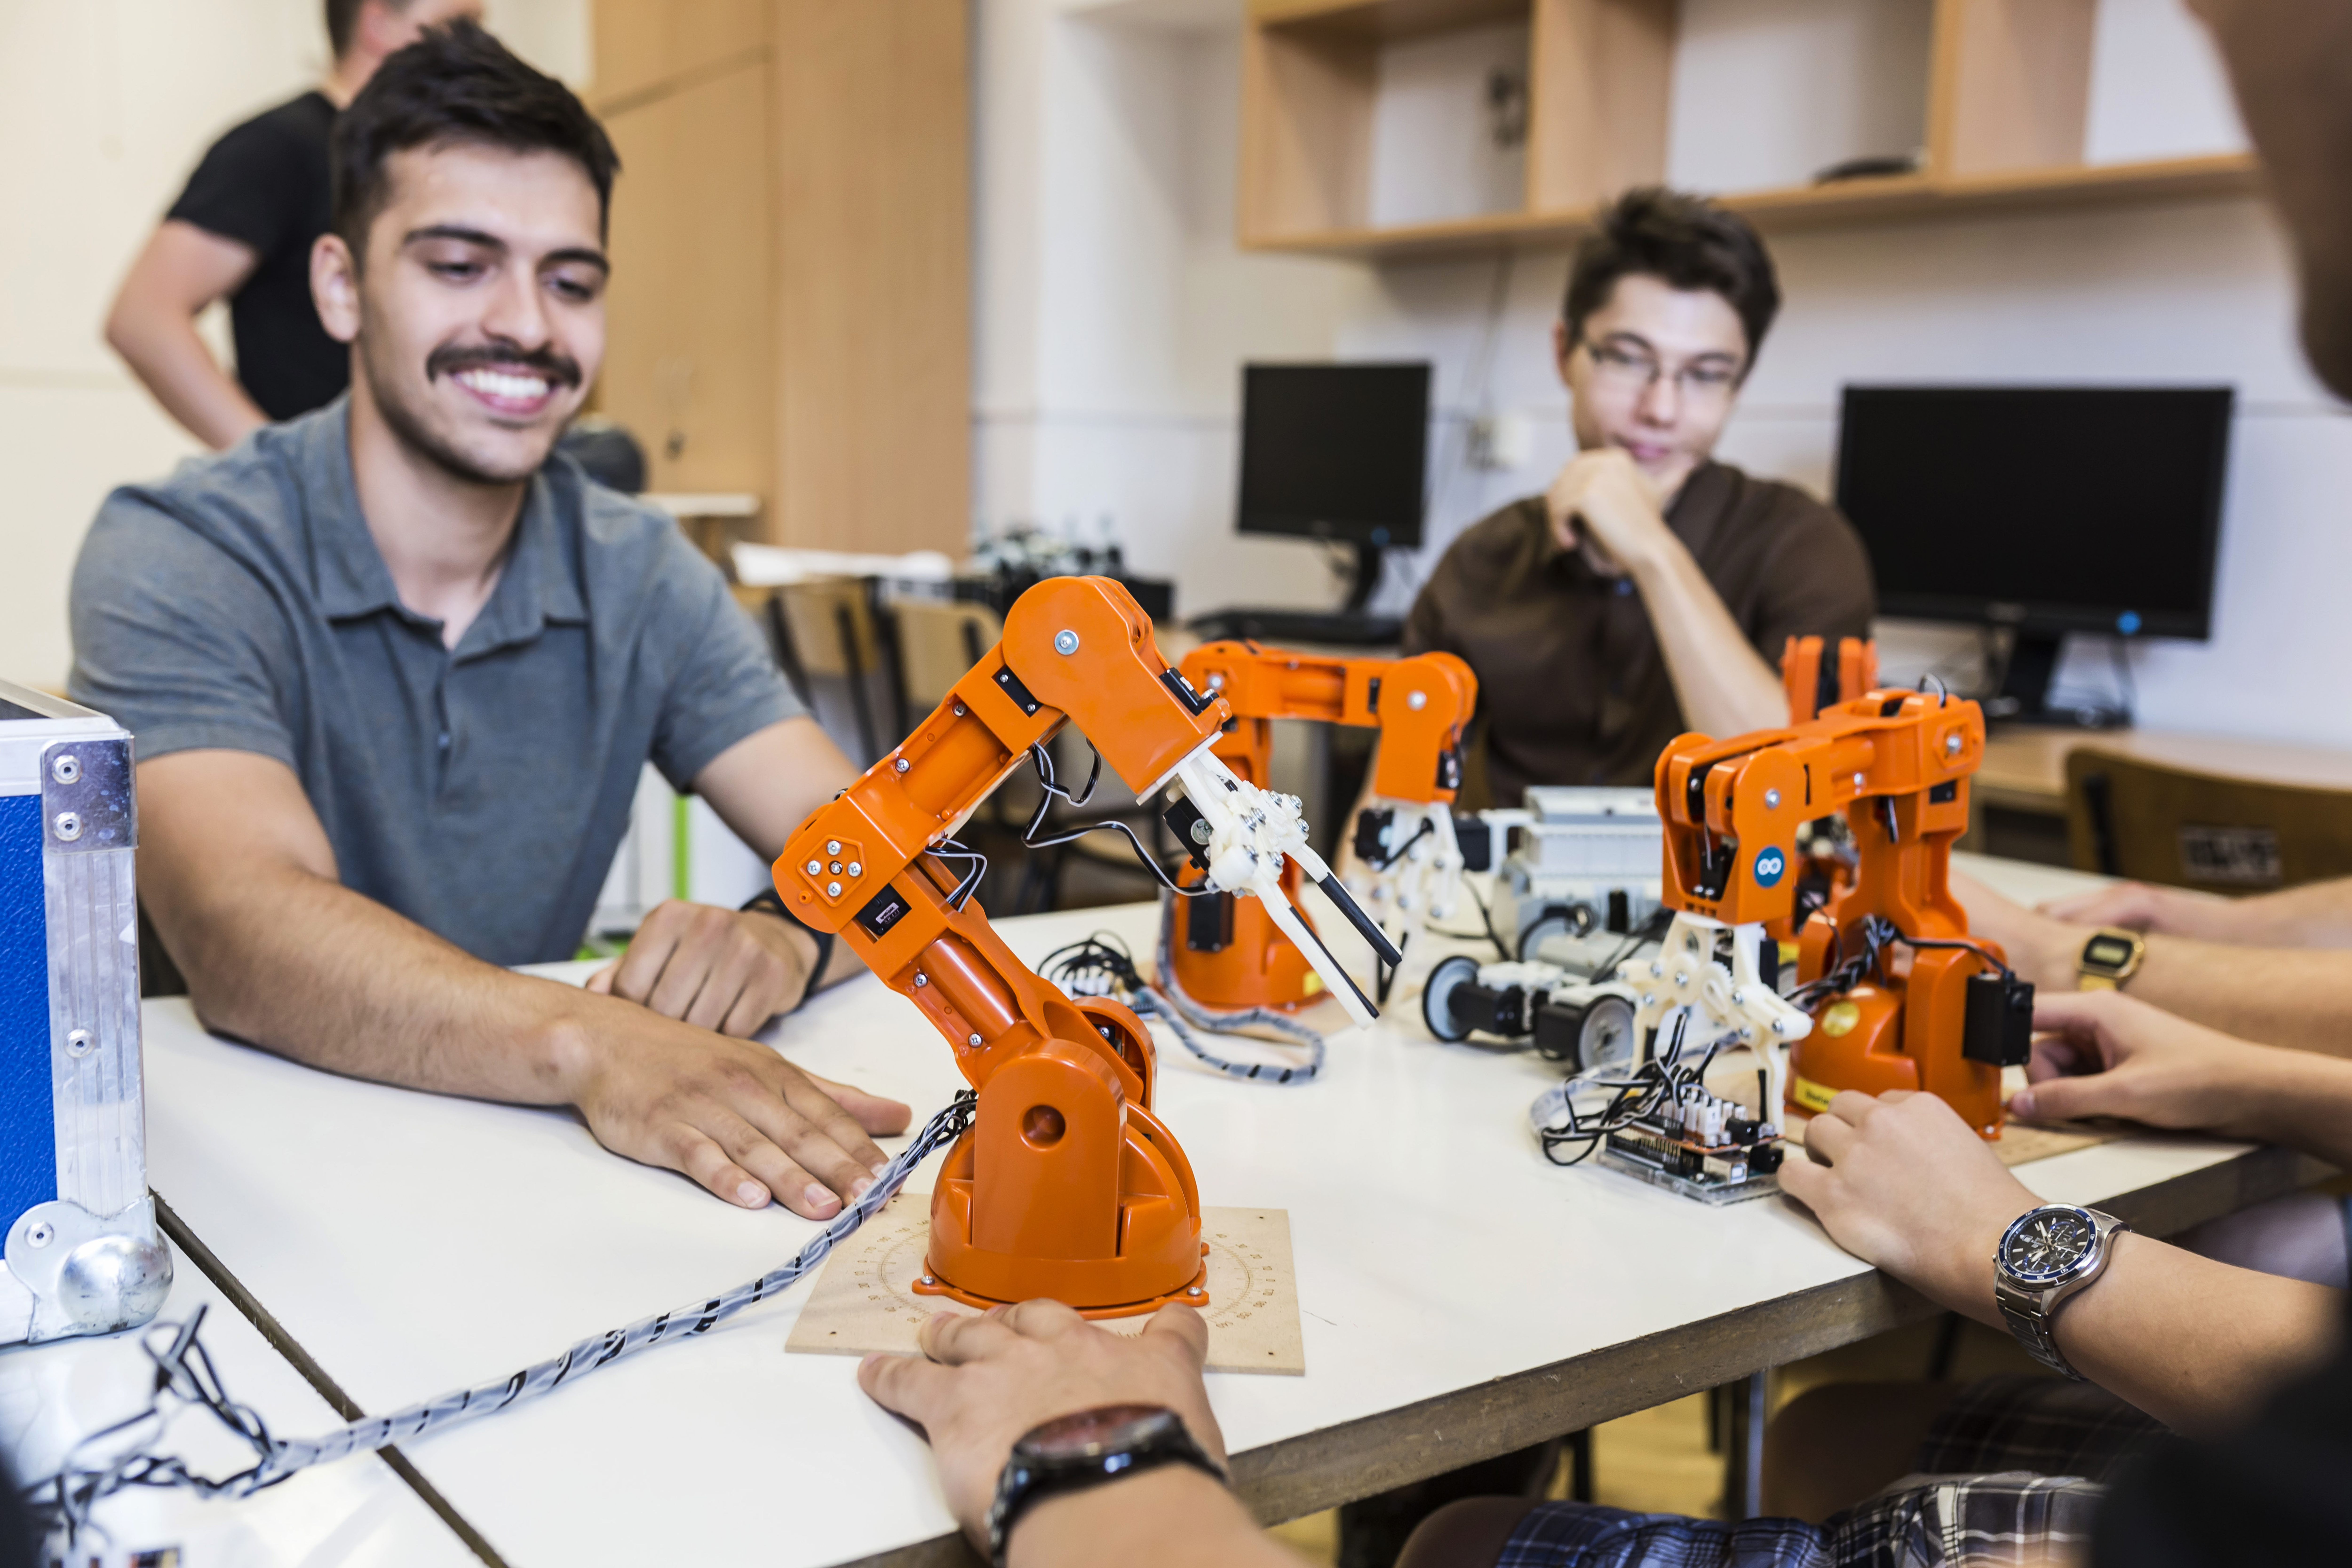 Group of students in a studio with orange robots.